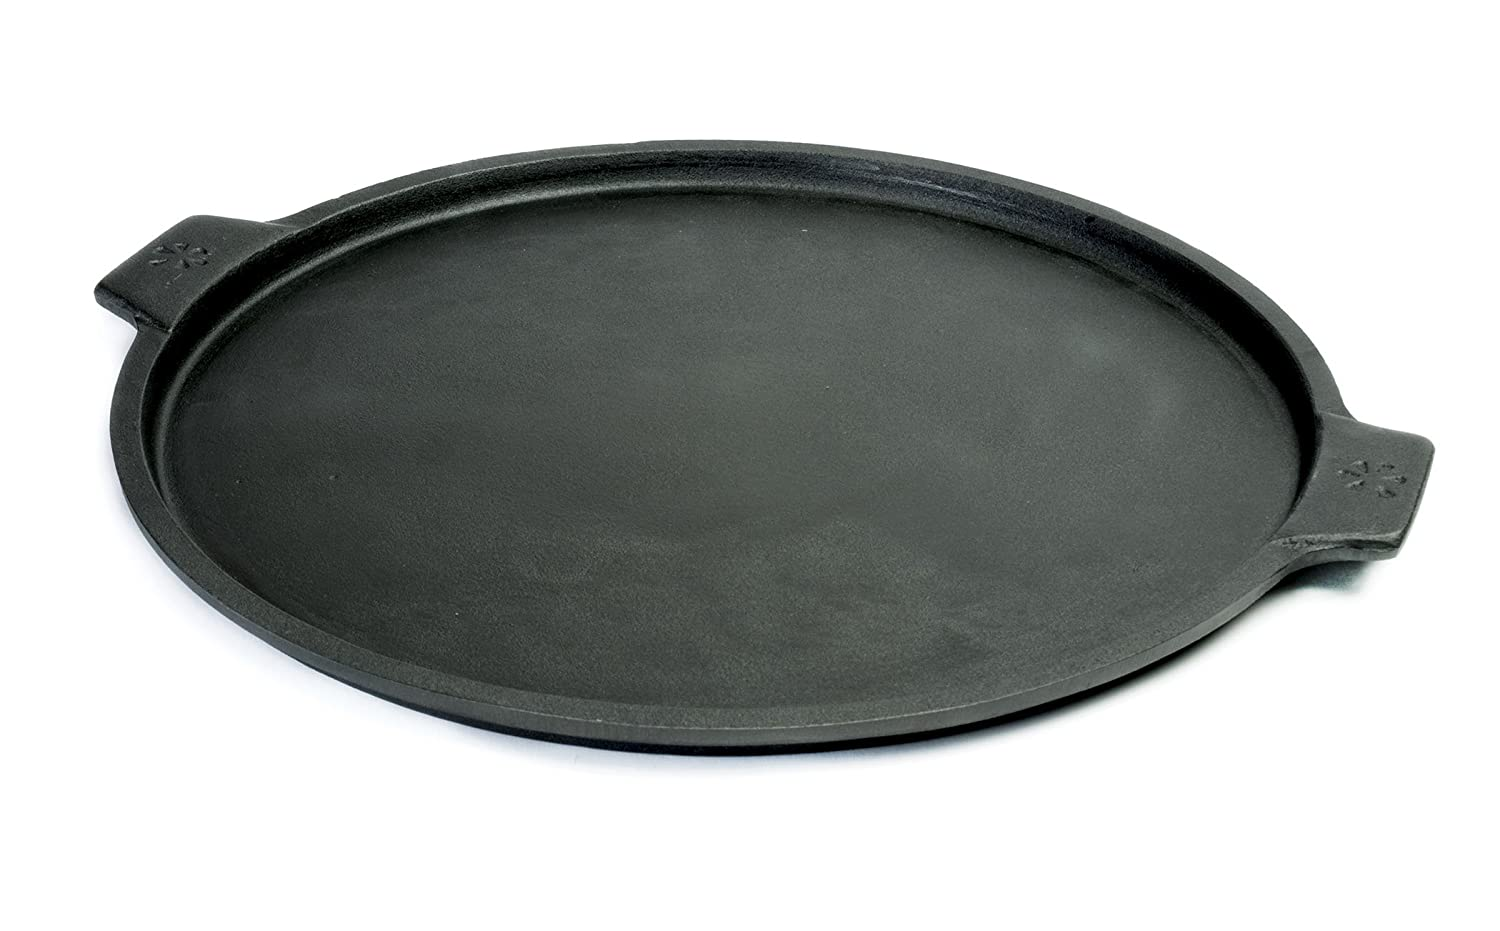 Pizzacraft Cast Iron Pizza Pan, 14-Inch, For Oven or Grill - PC0300 Charcoal Companion